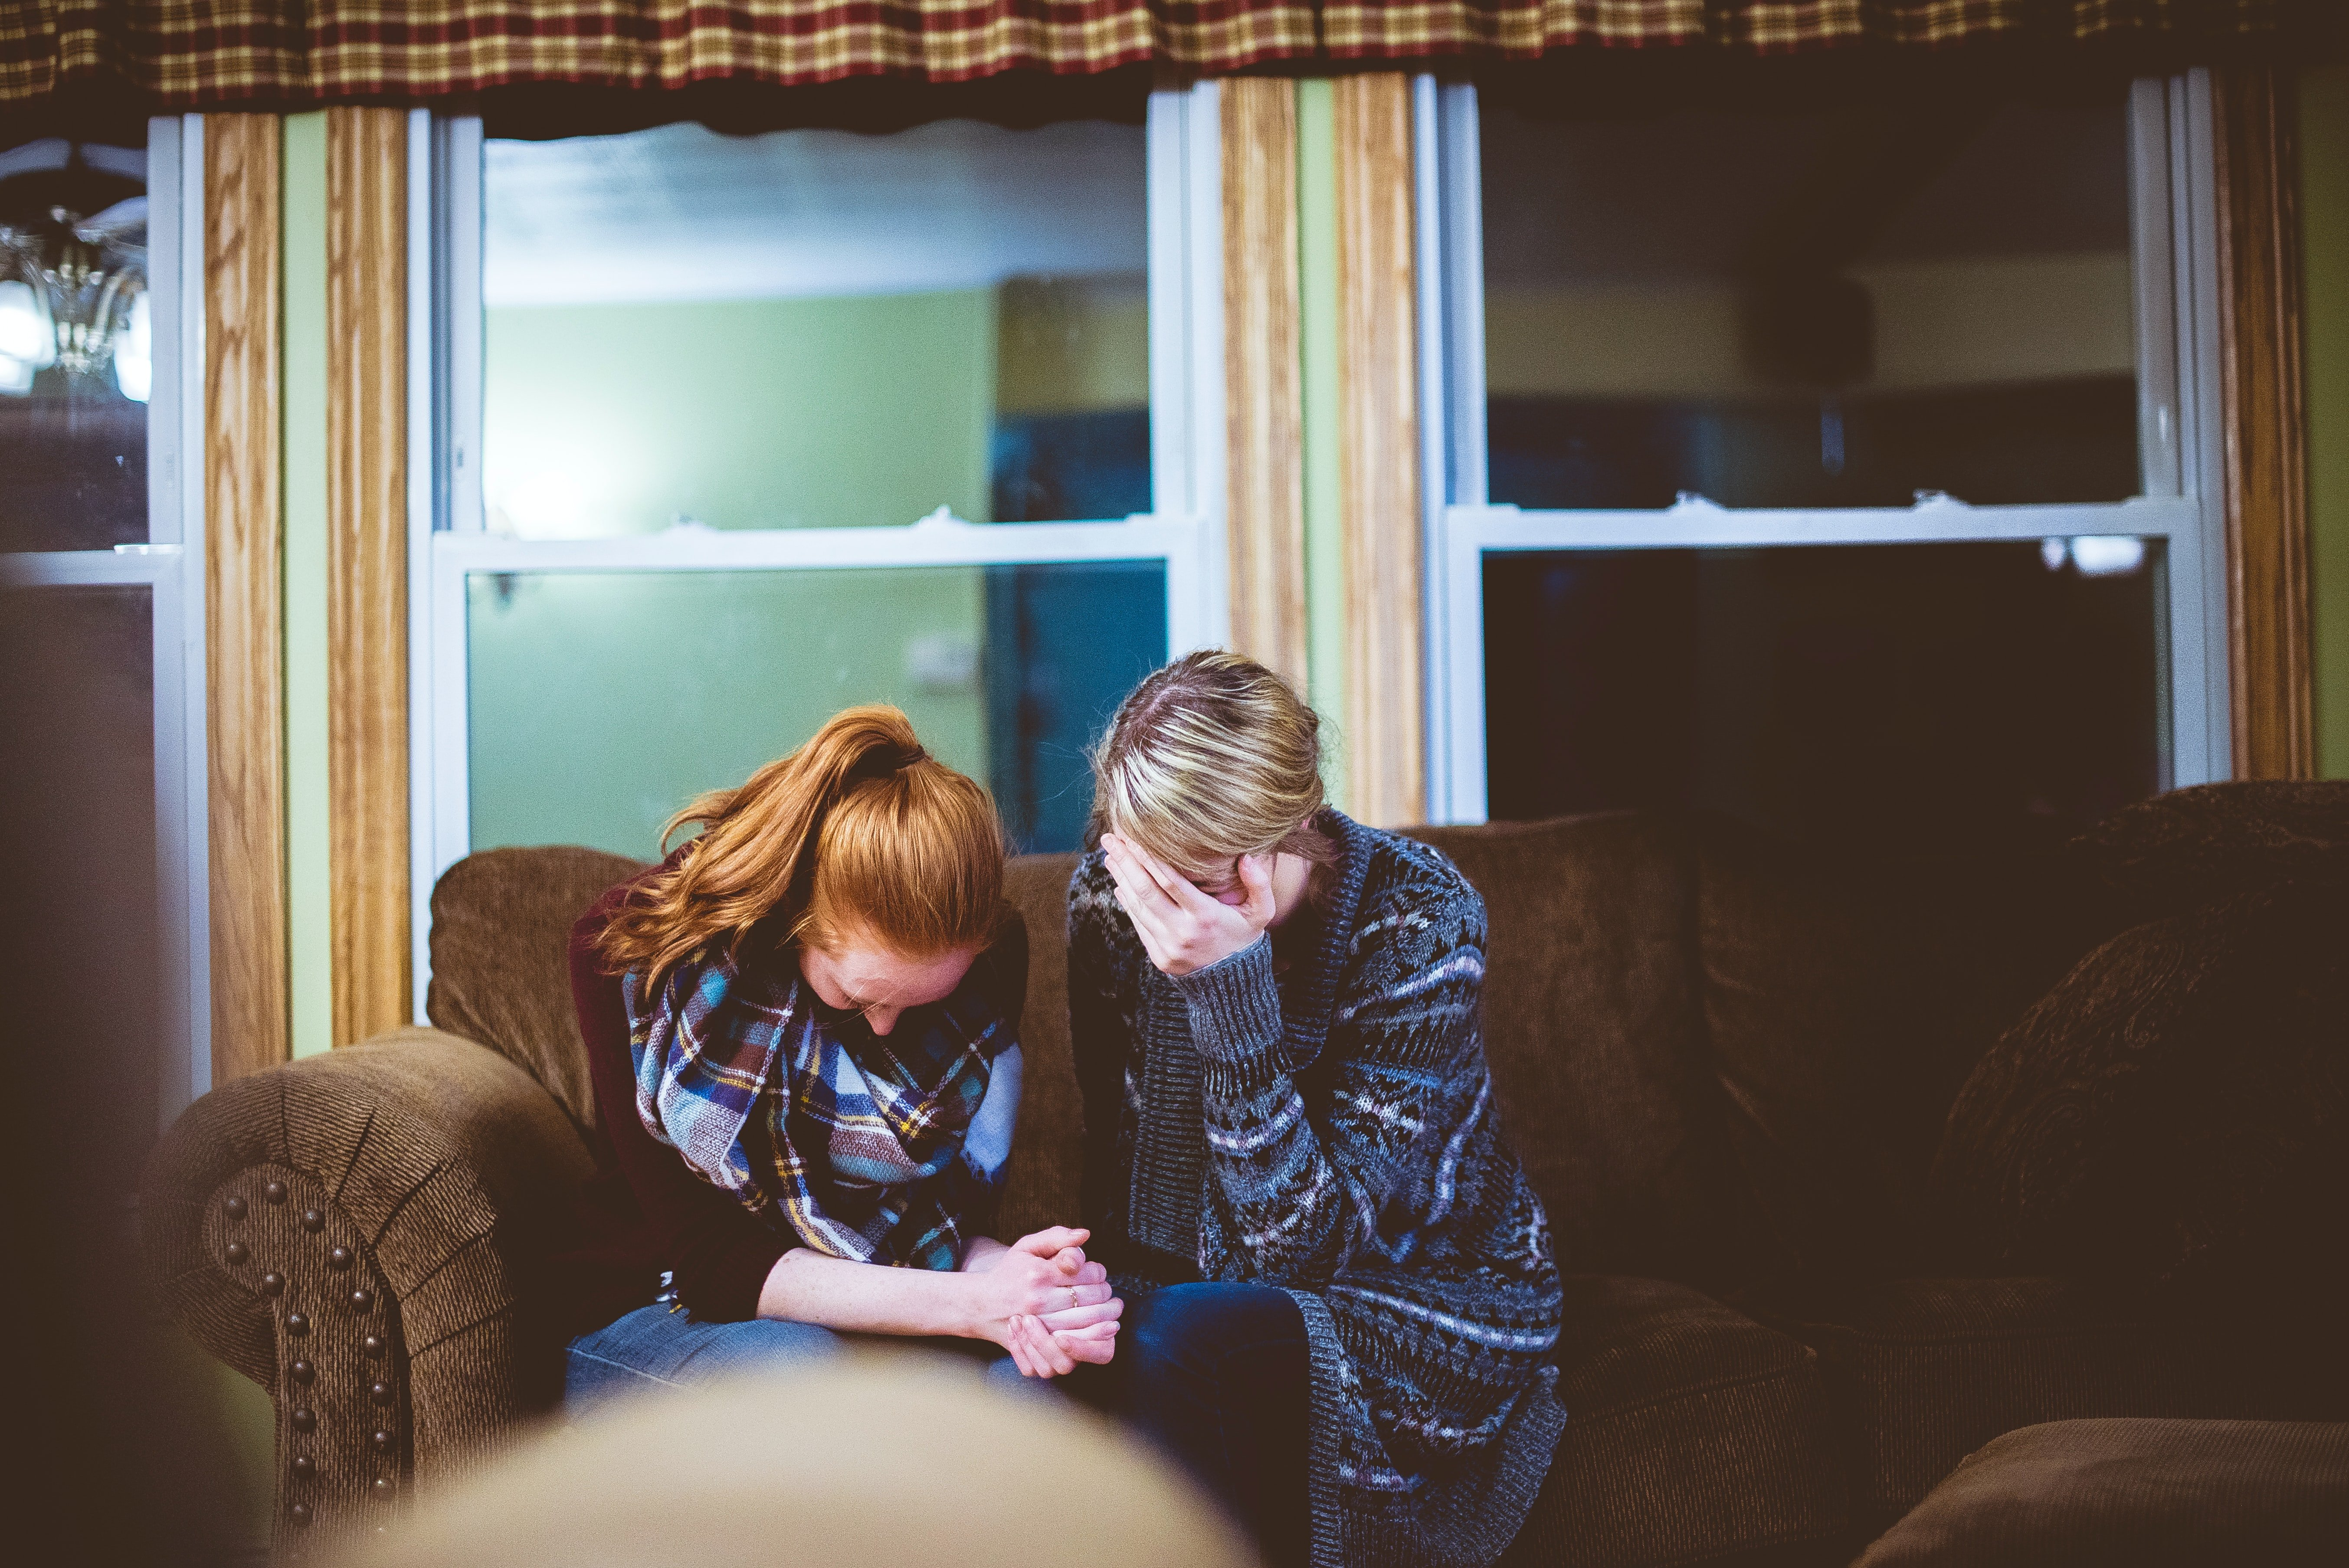 Distressed mother and daughter | Photo: Unsplash